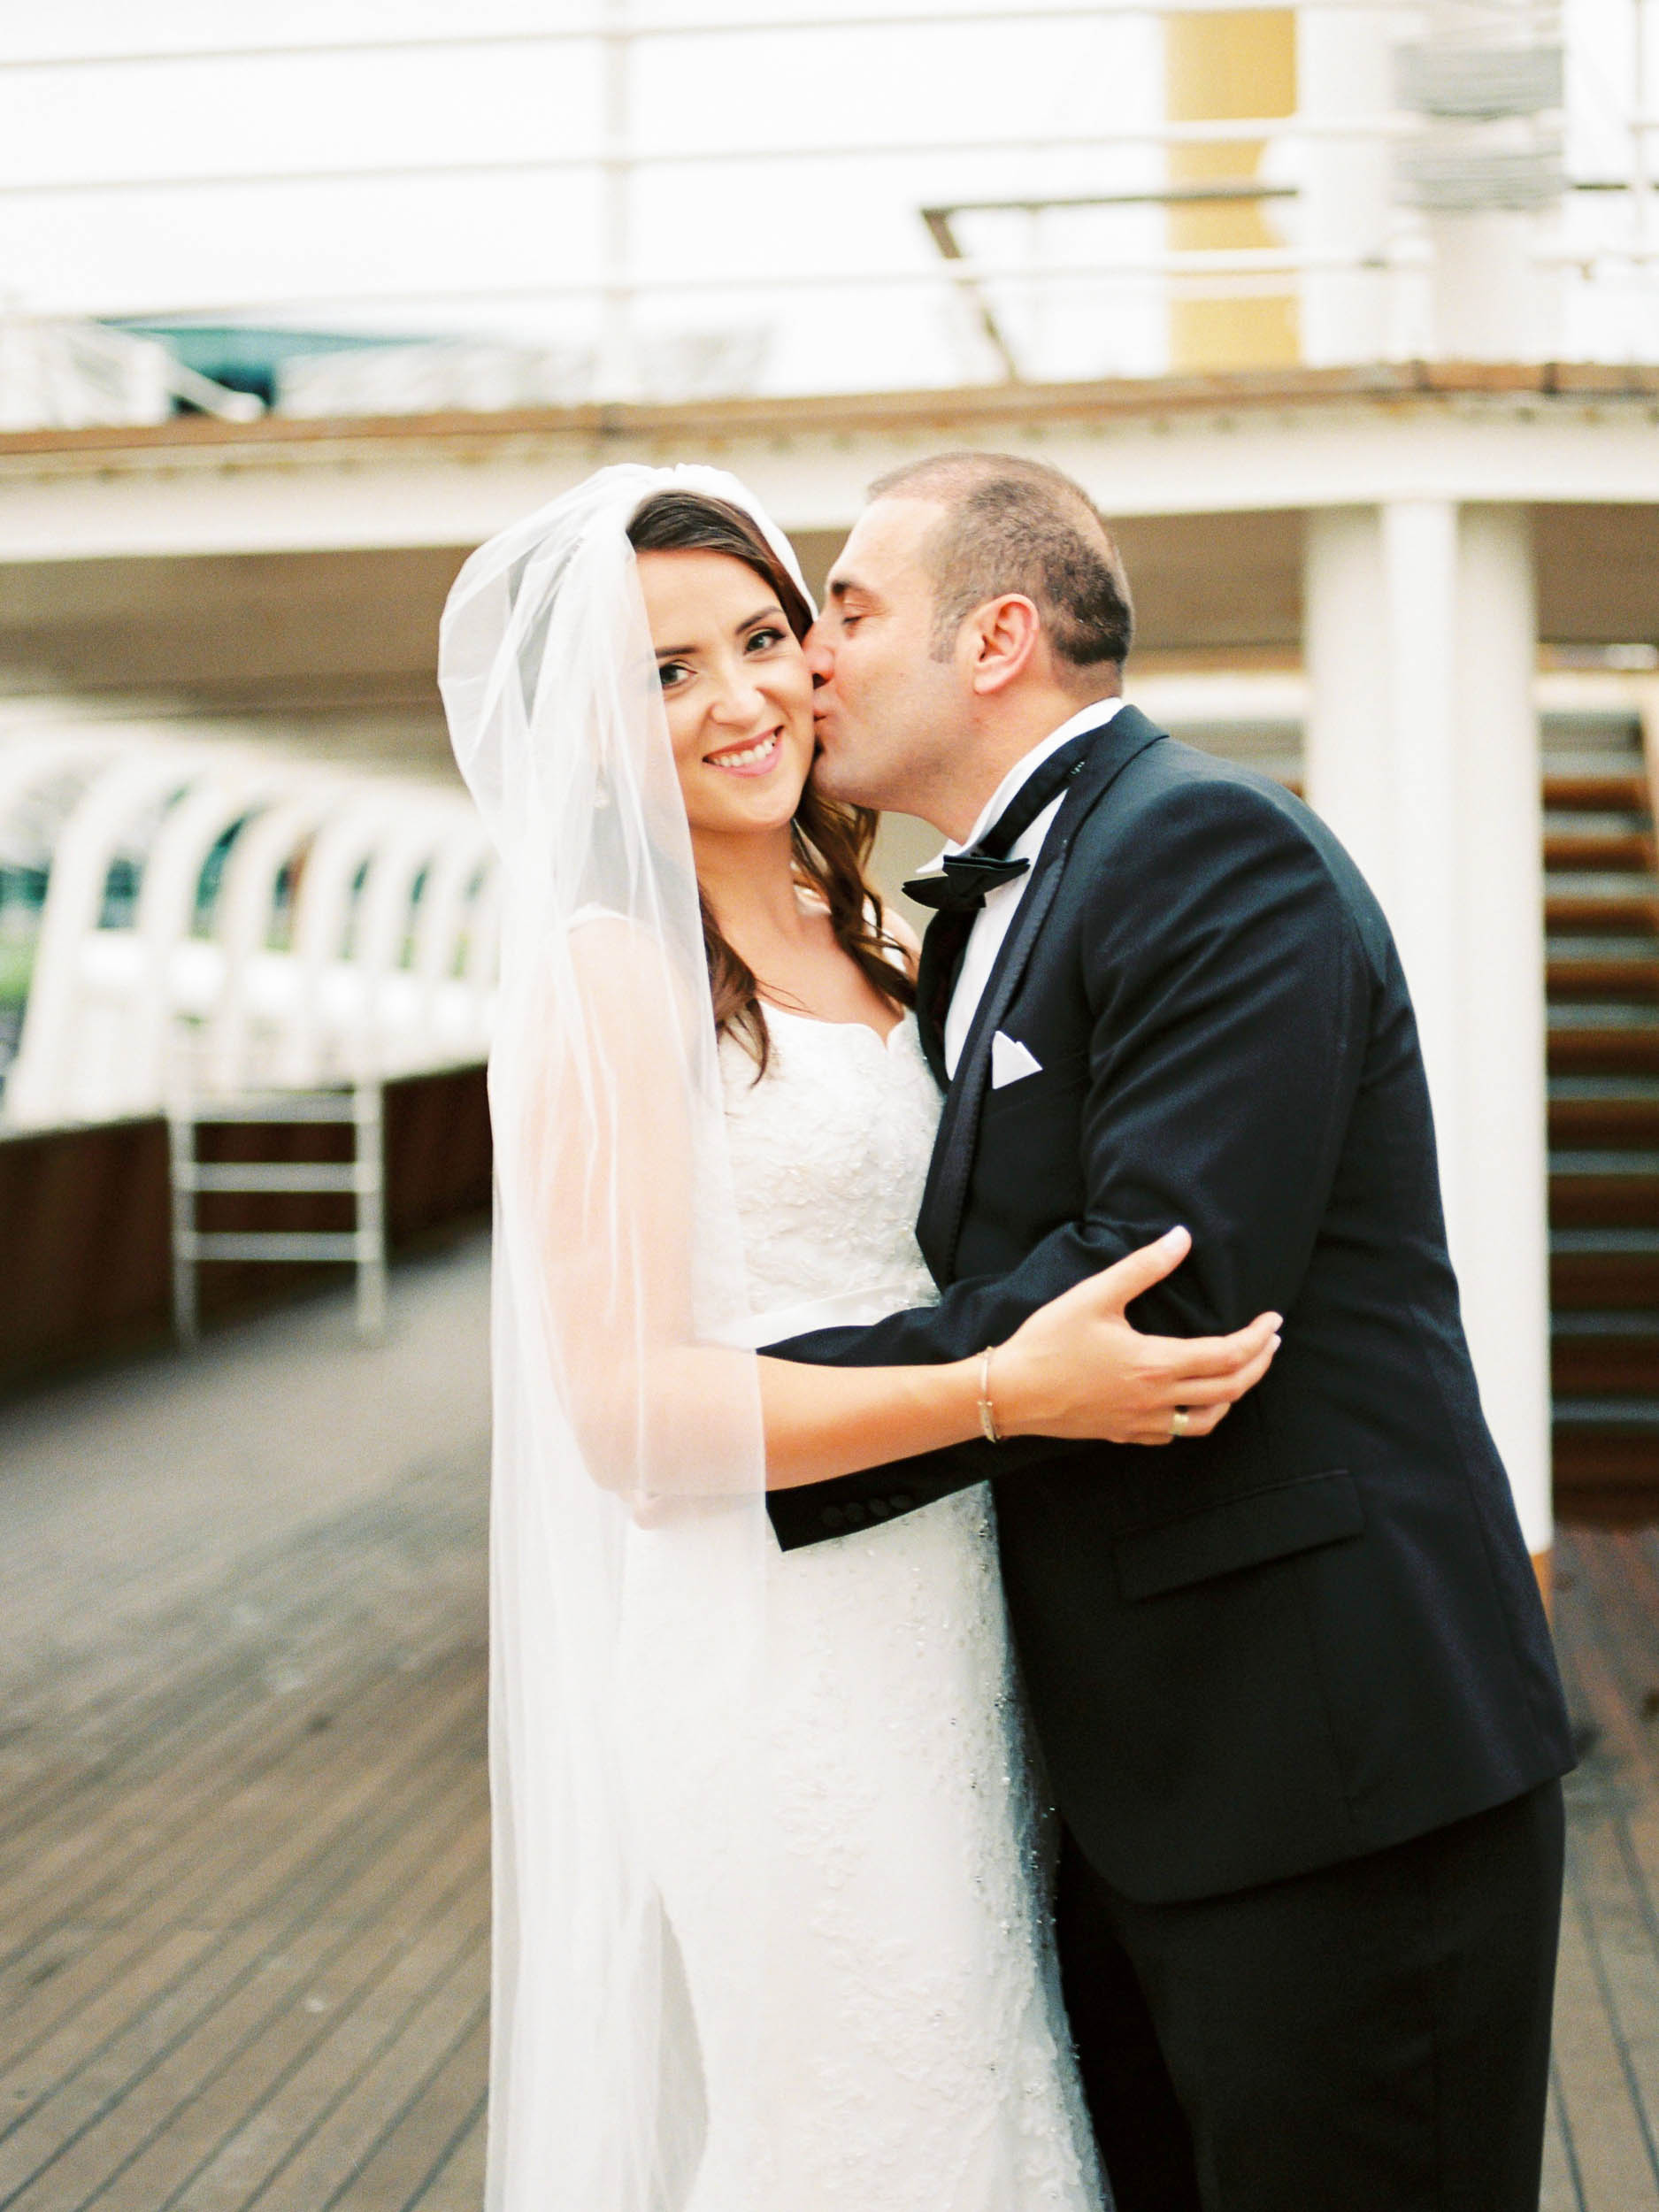 Amy O'Boyle Photography- Destination & UK Fine Art Film Wedding Photographer- SS Nomadic Belfast Wedding-8.jpg